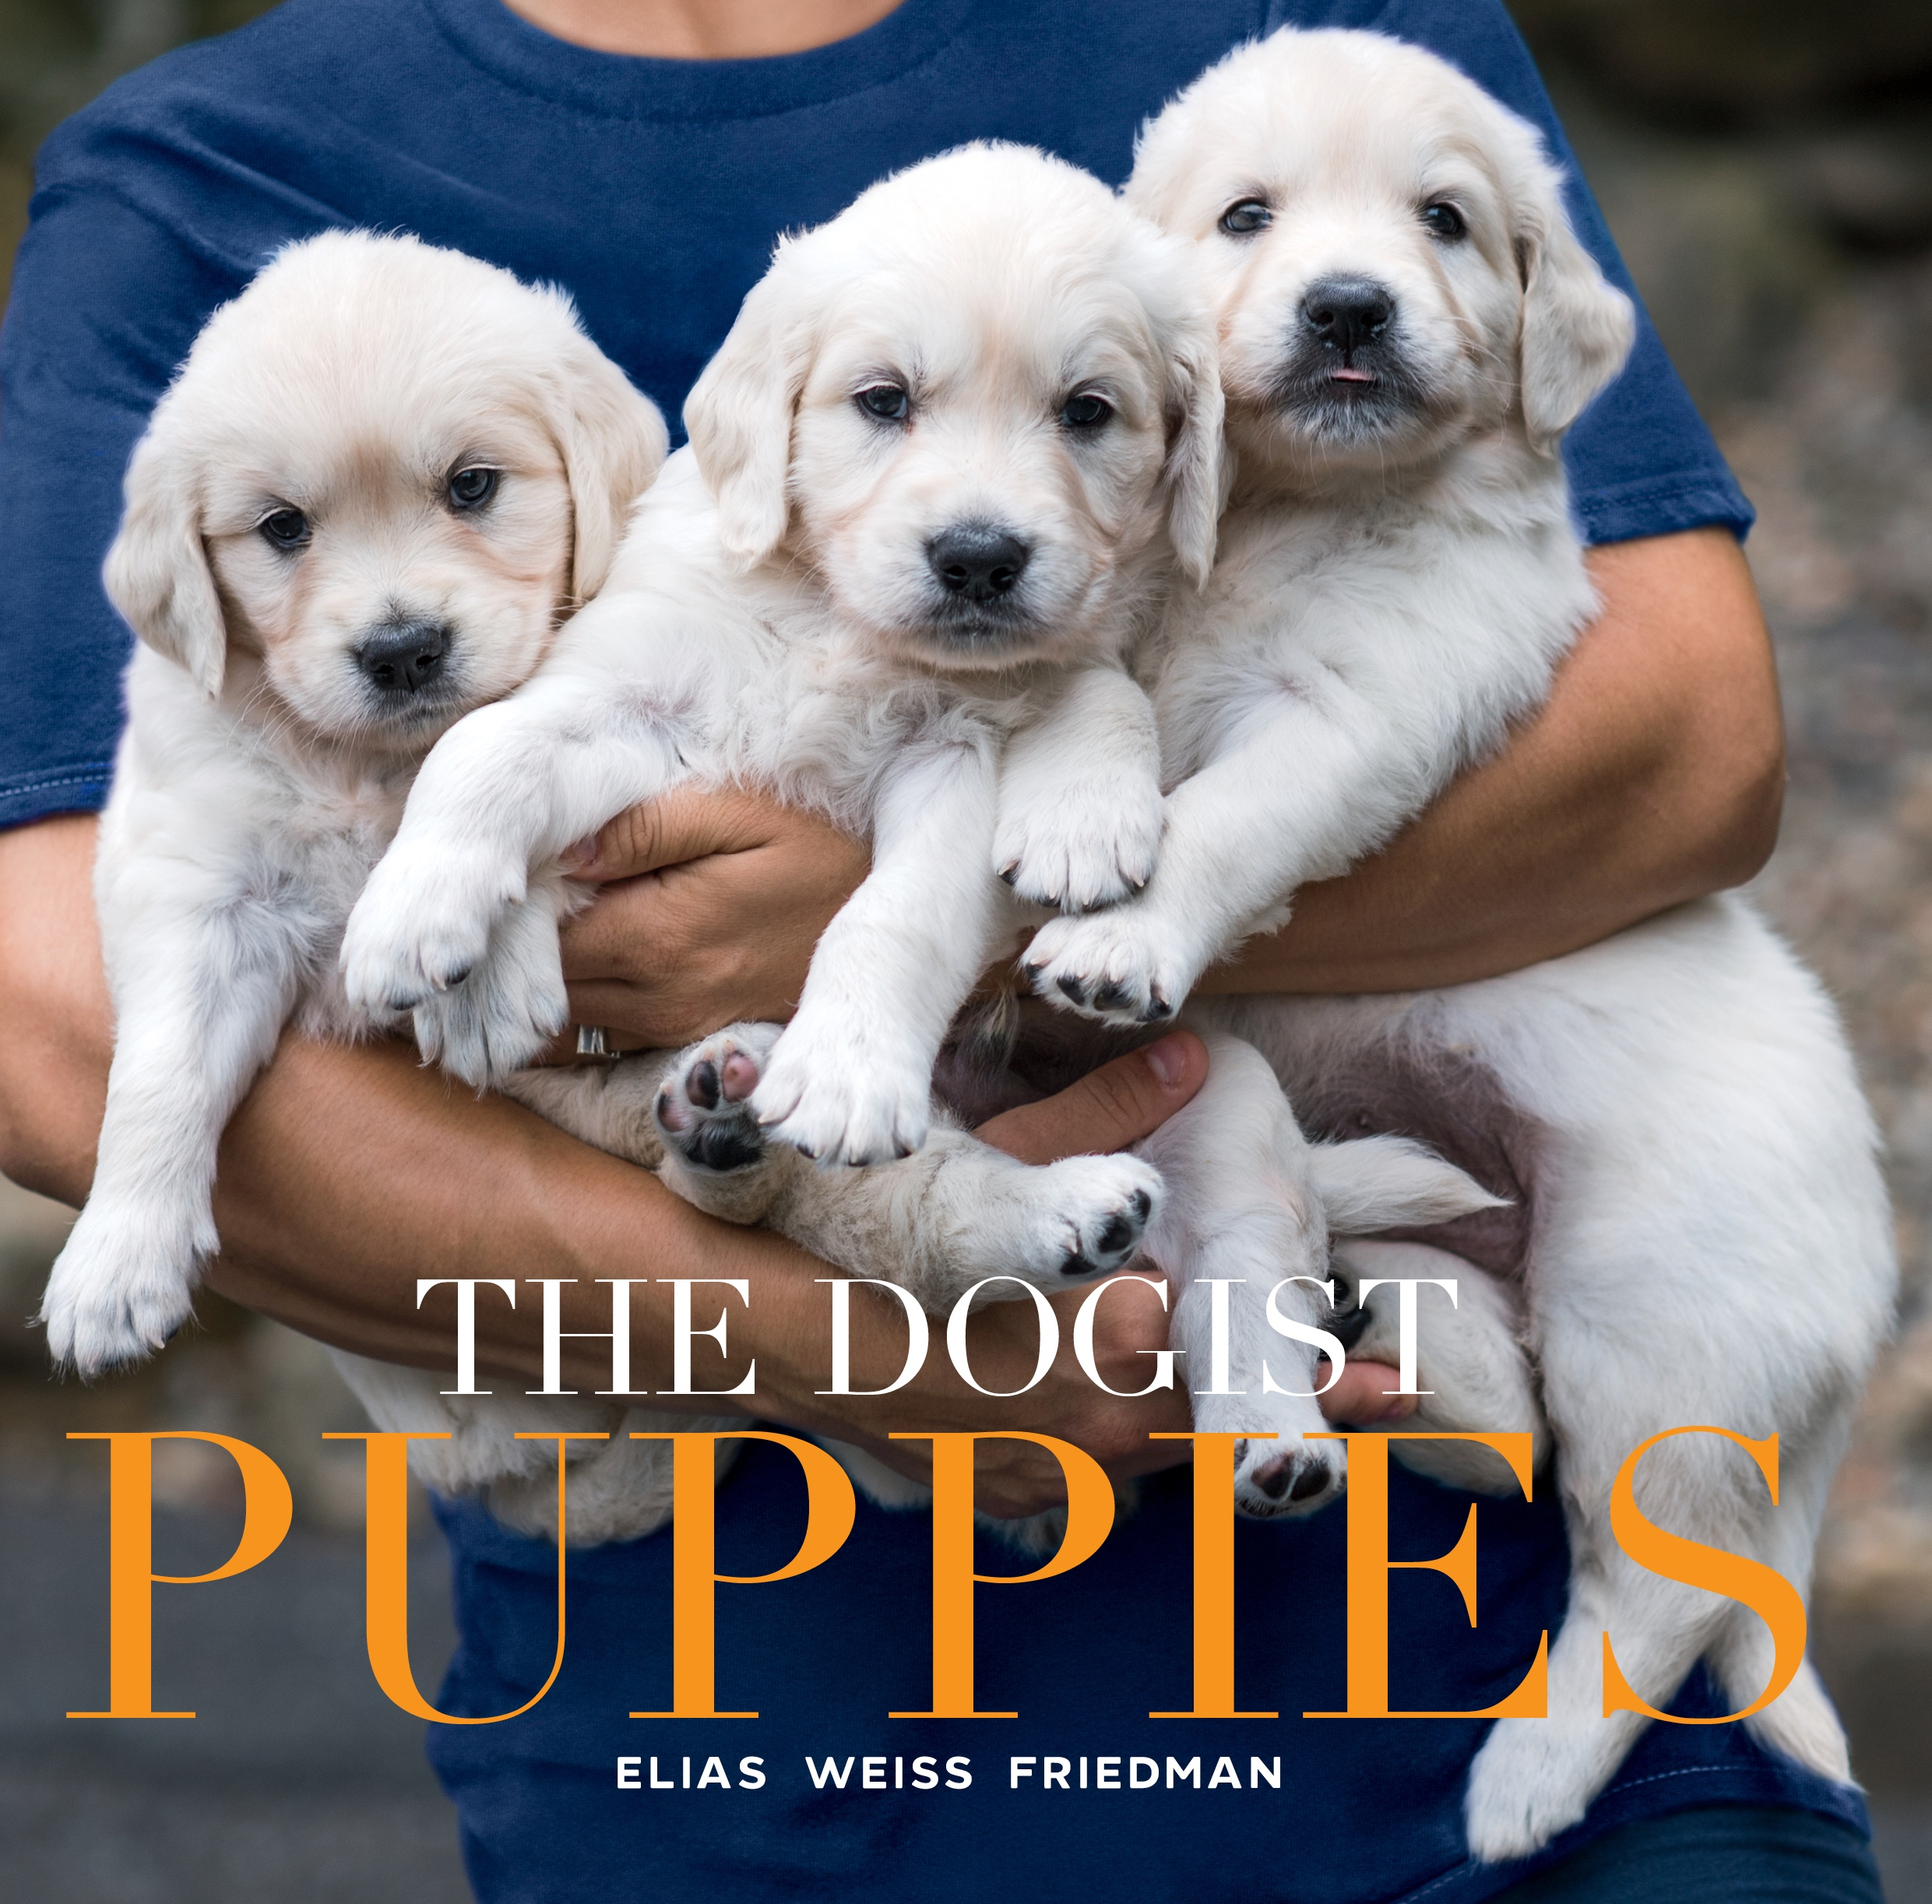 The Cover of The Dogist Puppies